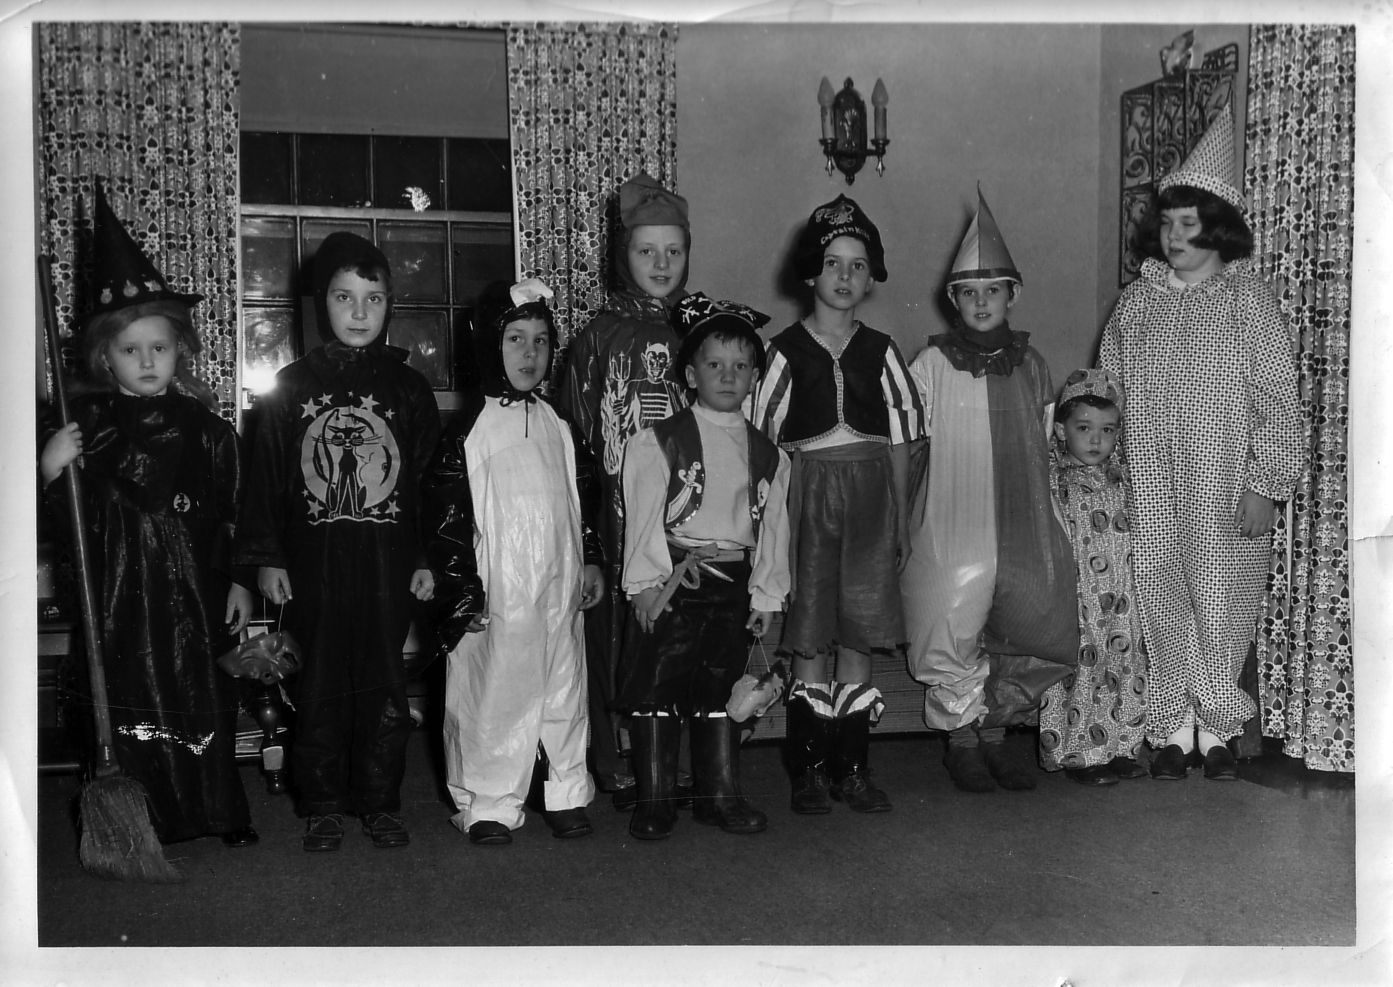 ... 1950 s america history of halloween life in the 50 s pinterest ...  sc 1 st  The Halloween - aaasne & Halloween Costumes 1950s - The Halloween